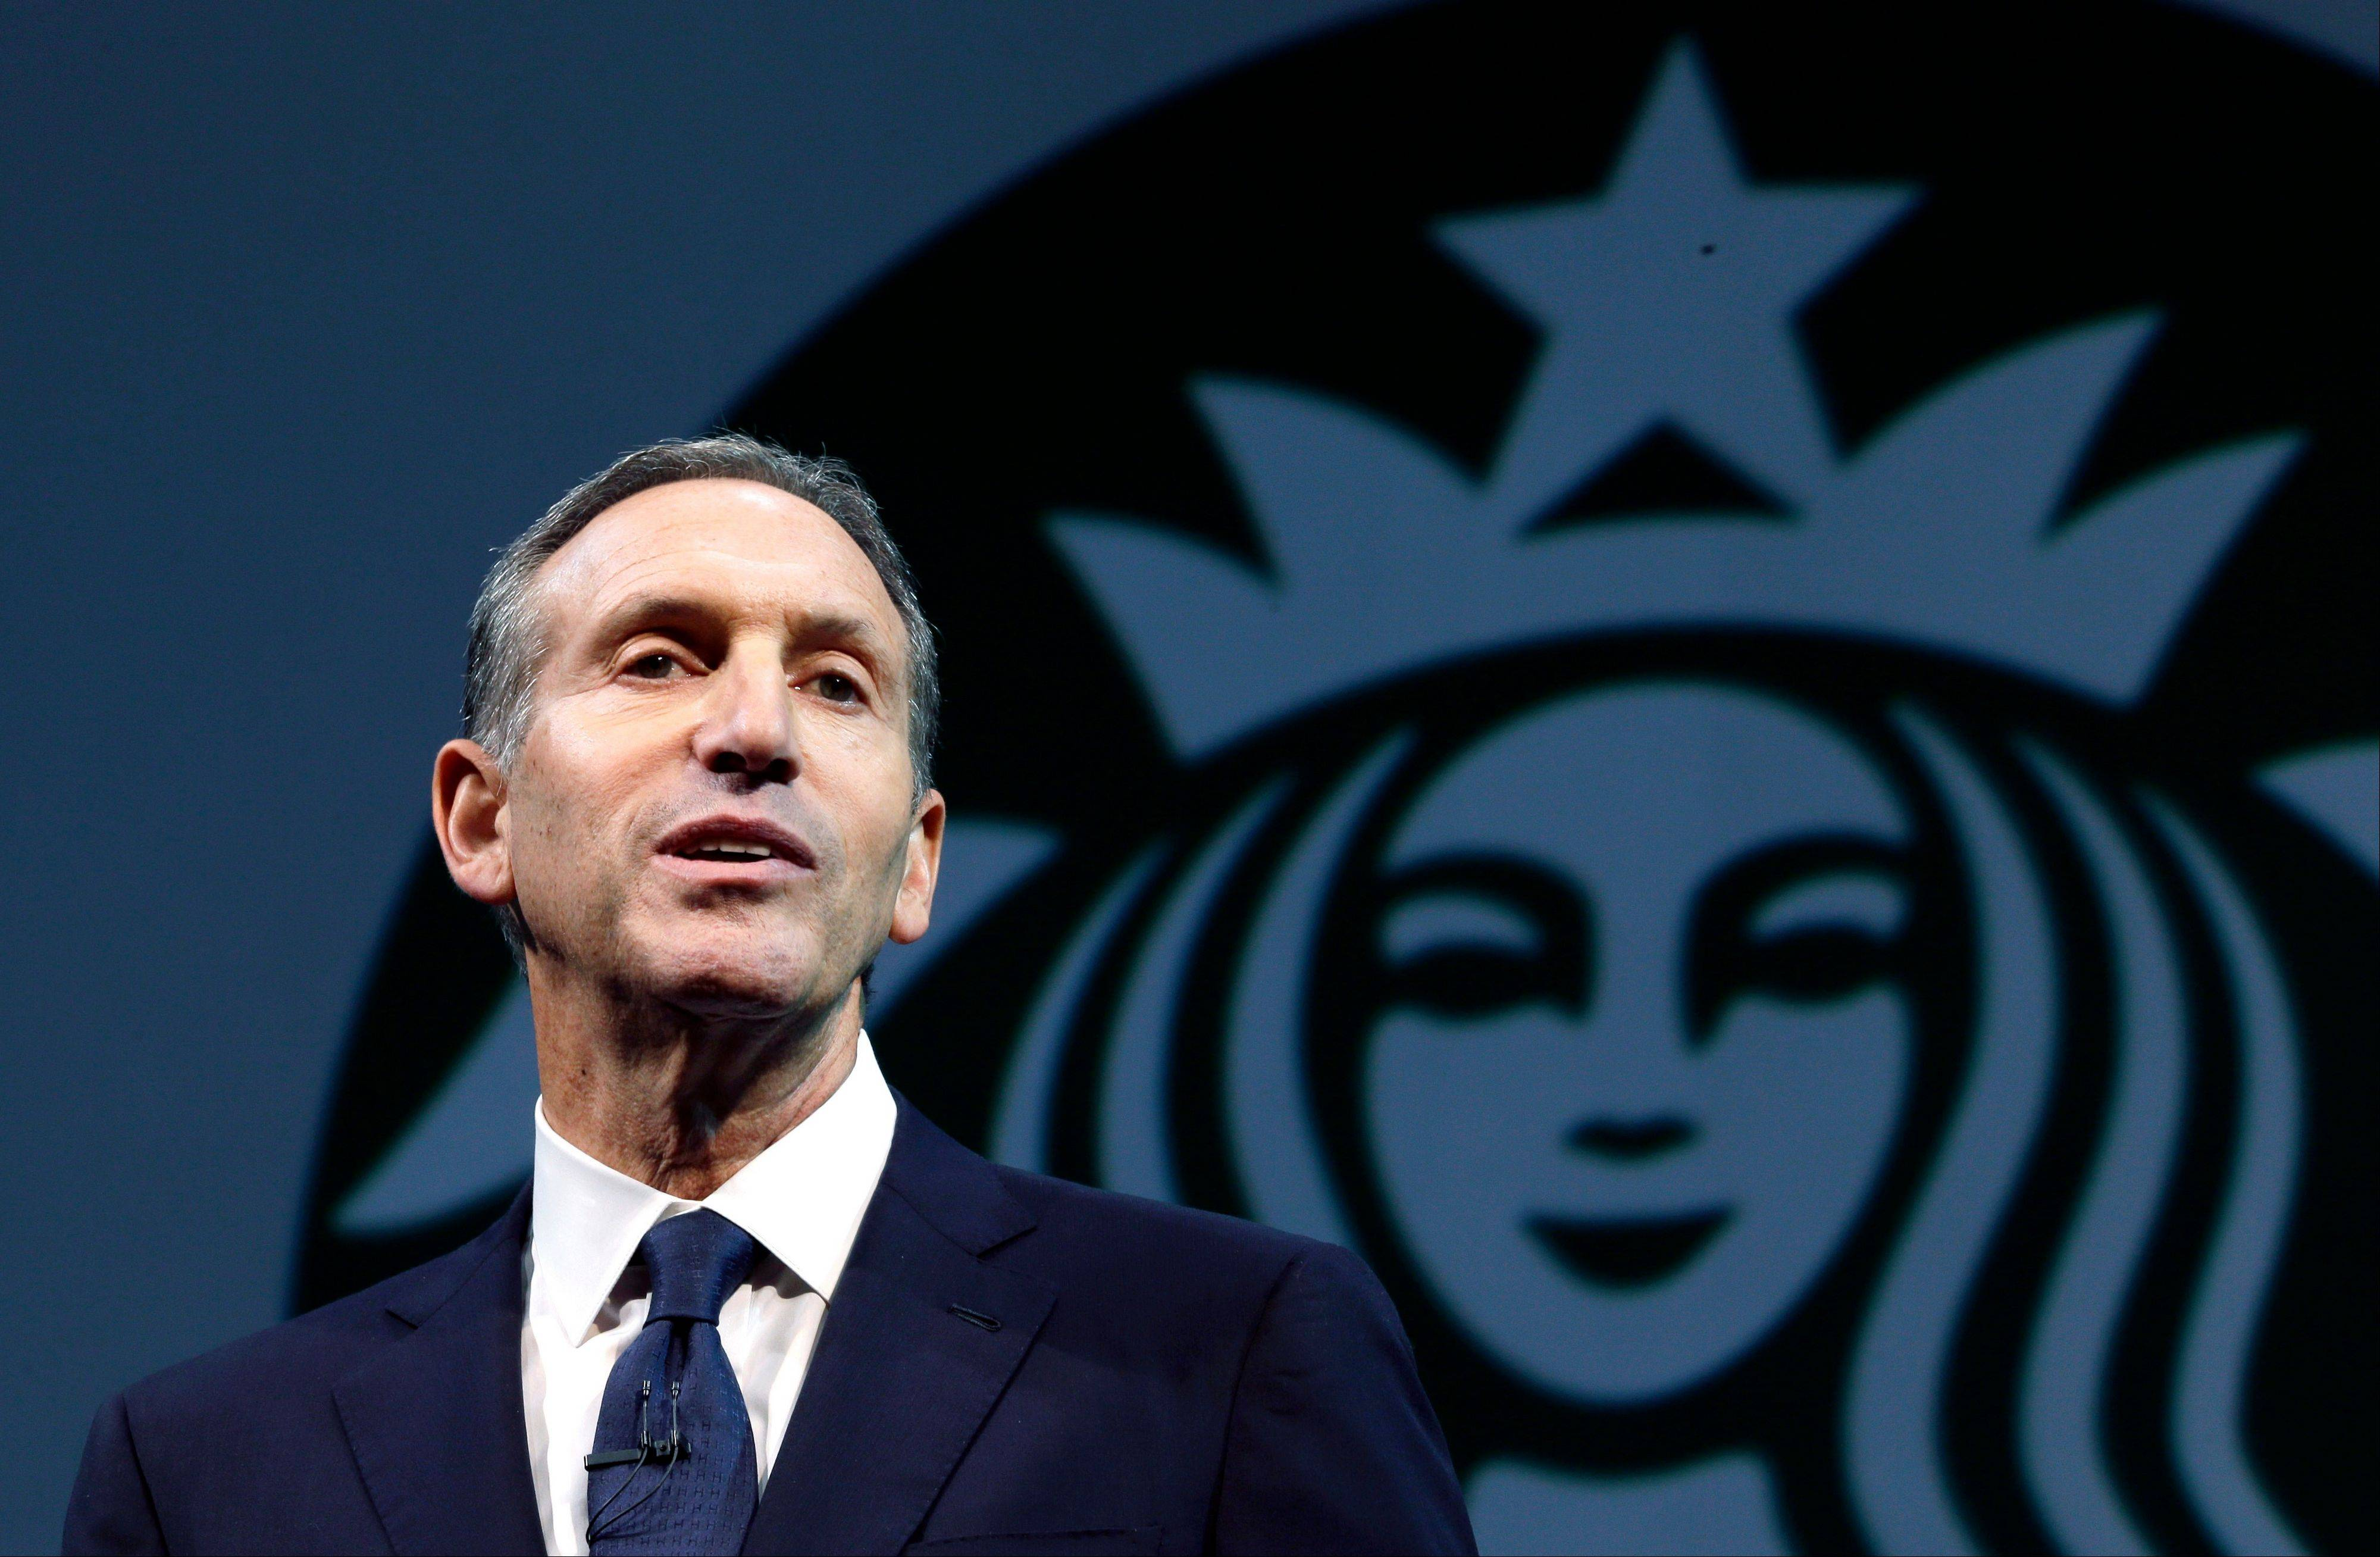 Starbucks CEO Howard Schultz speaks at the company's annual shareholders meeting Wednesday in Seattle, Wash.